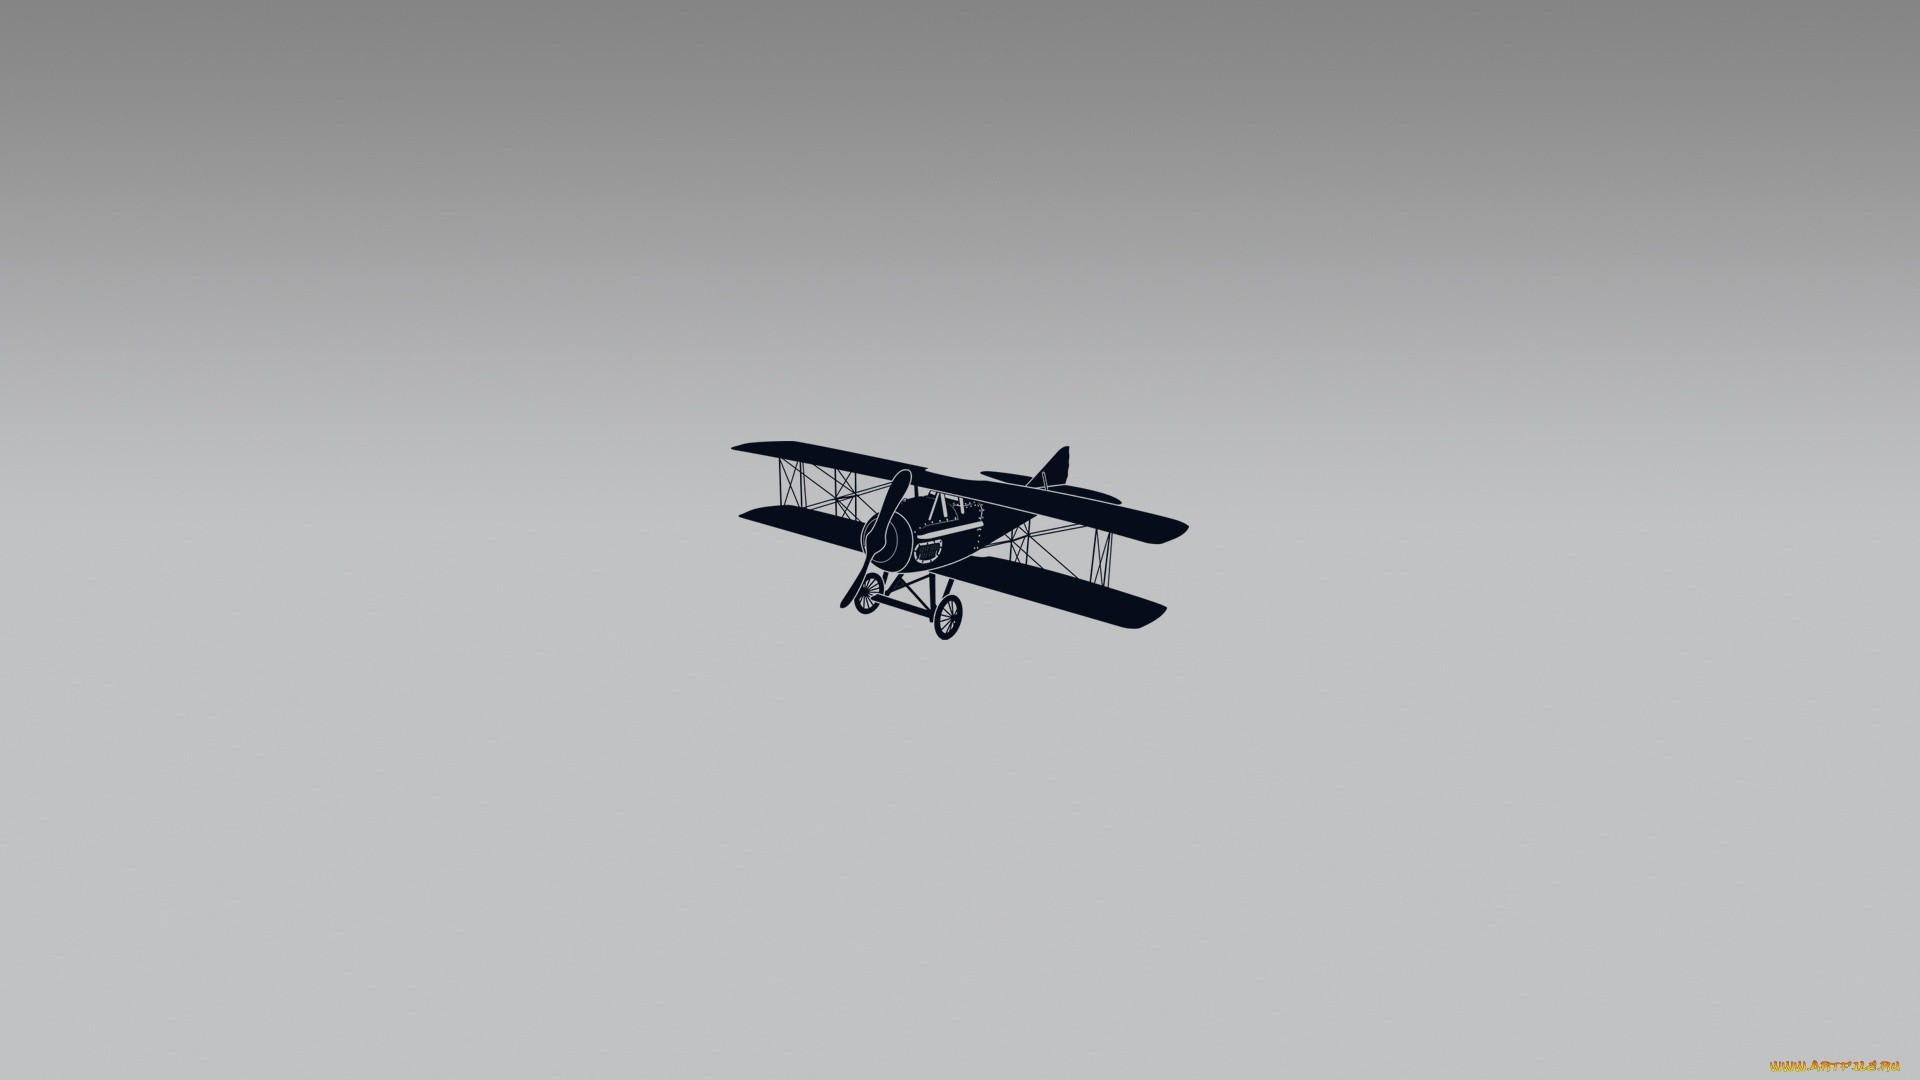 Airplane Minimalist HD Wallpaper